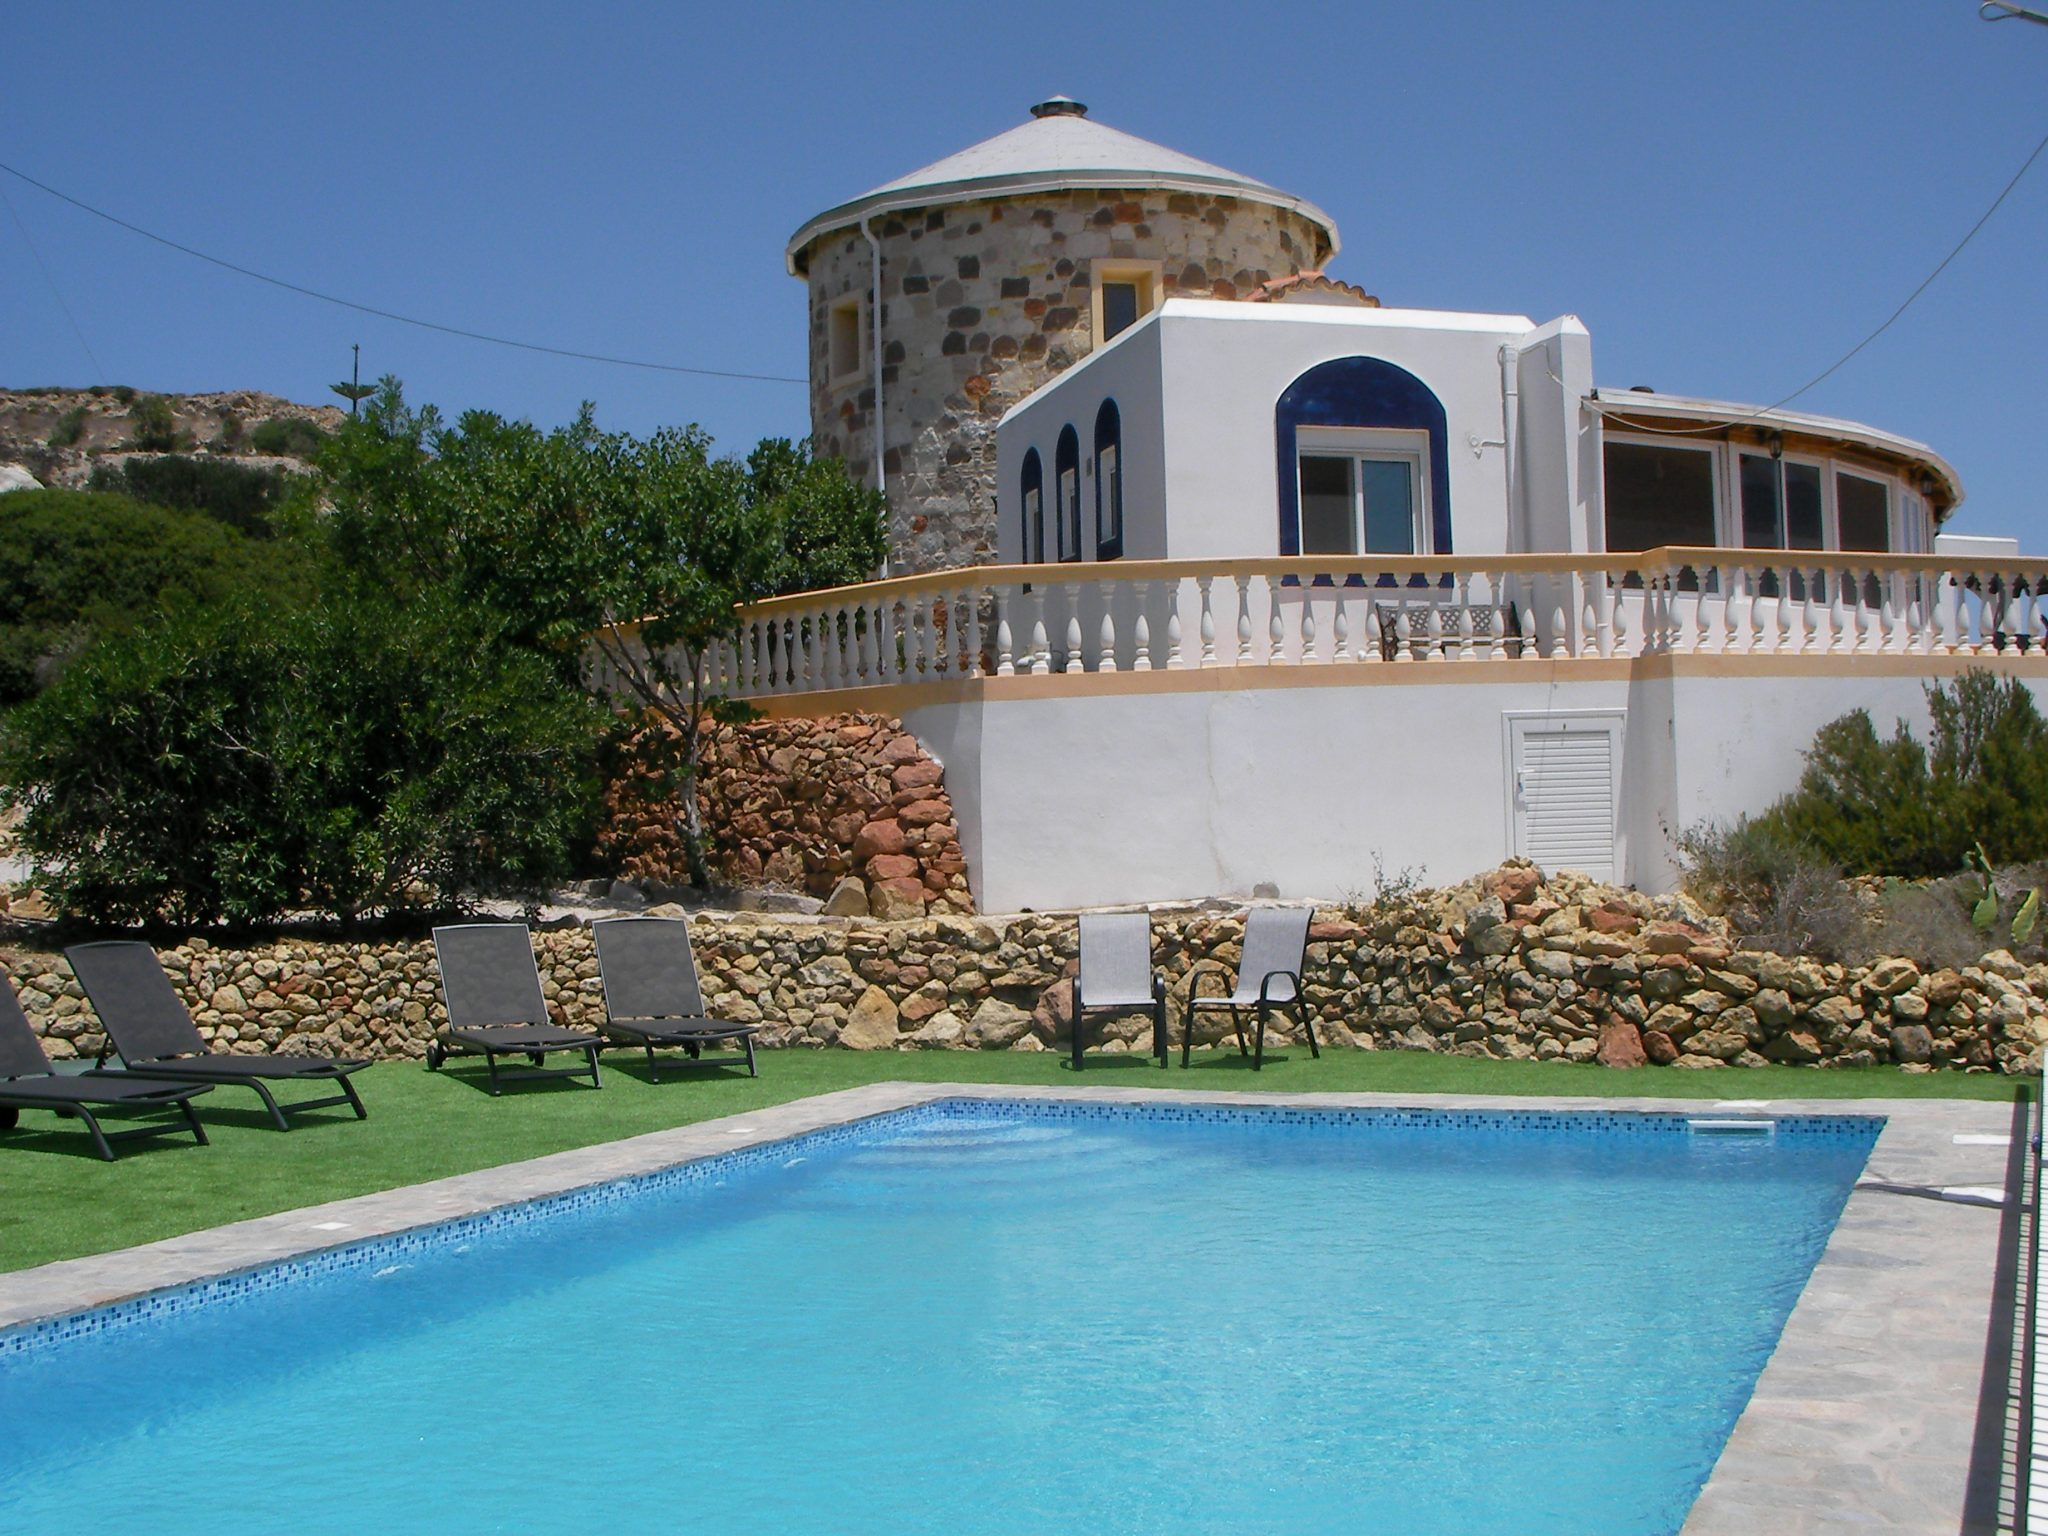 The Tower House in Kos with it's pool in the foreground